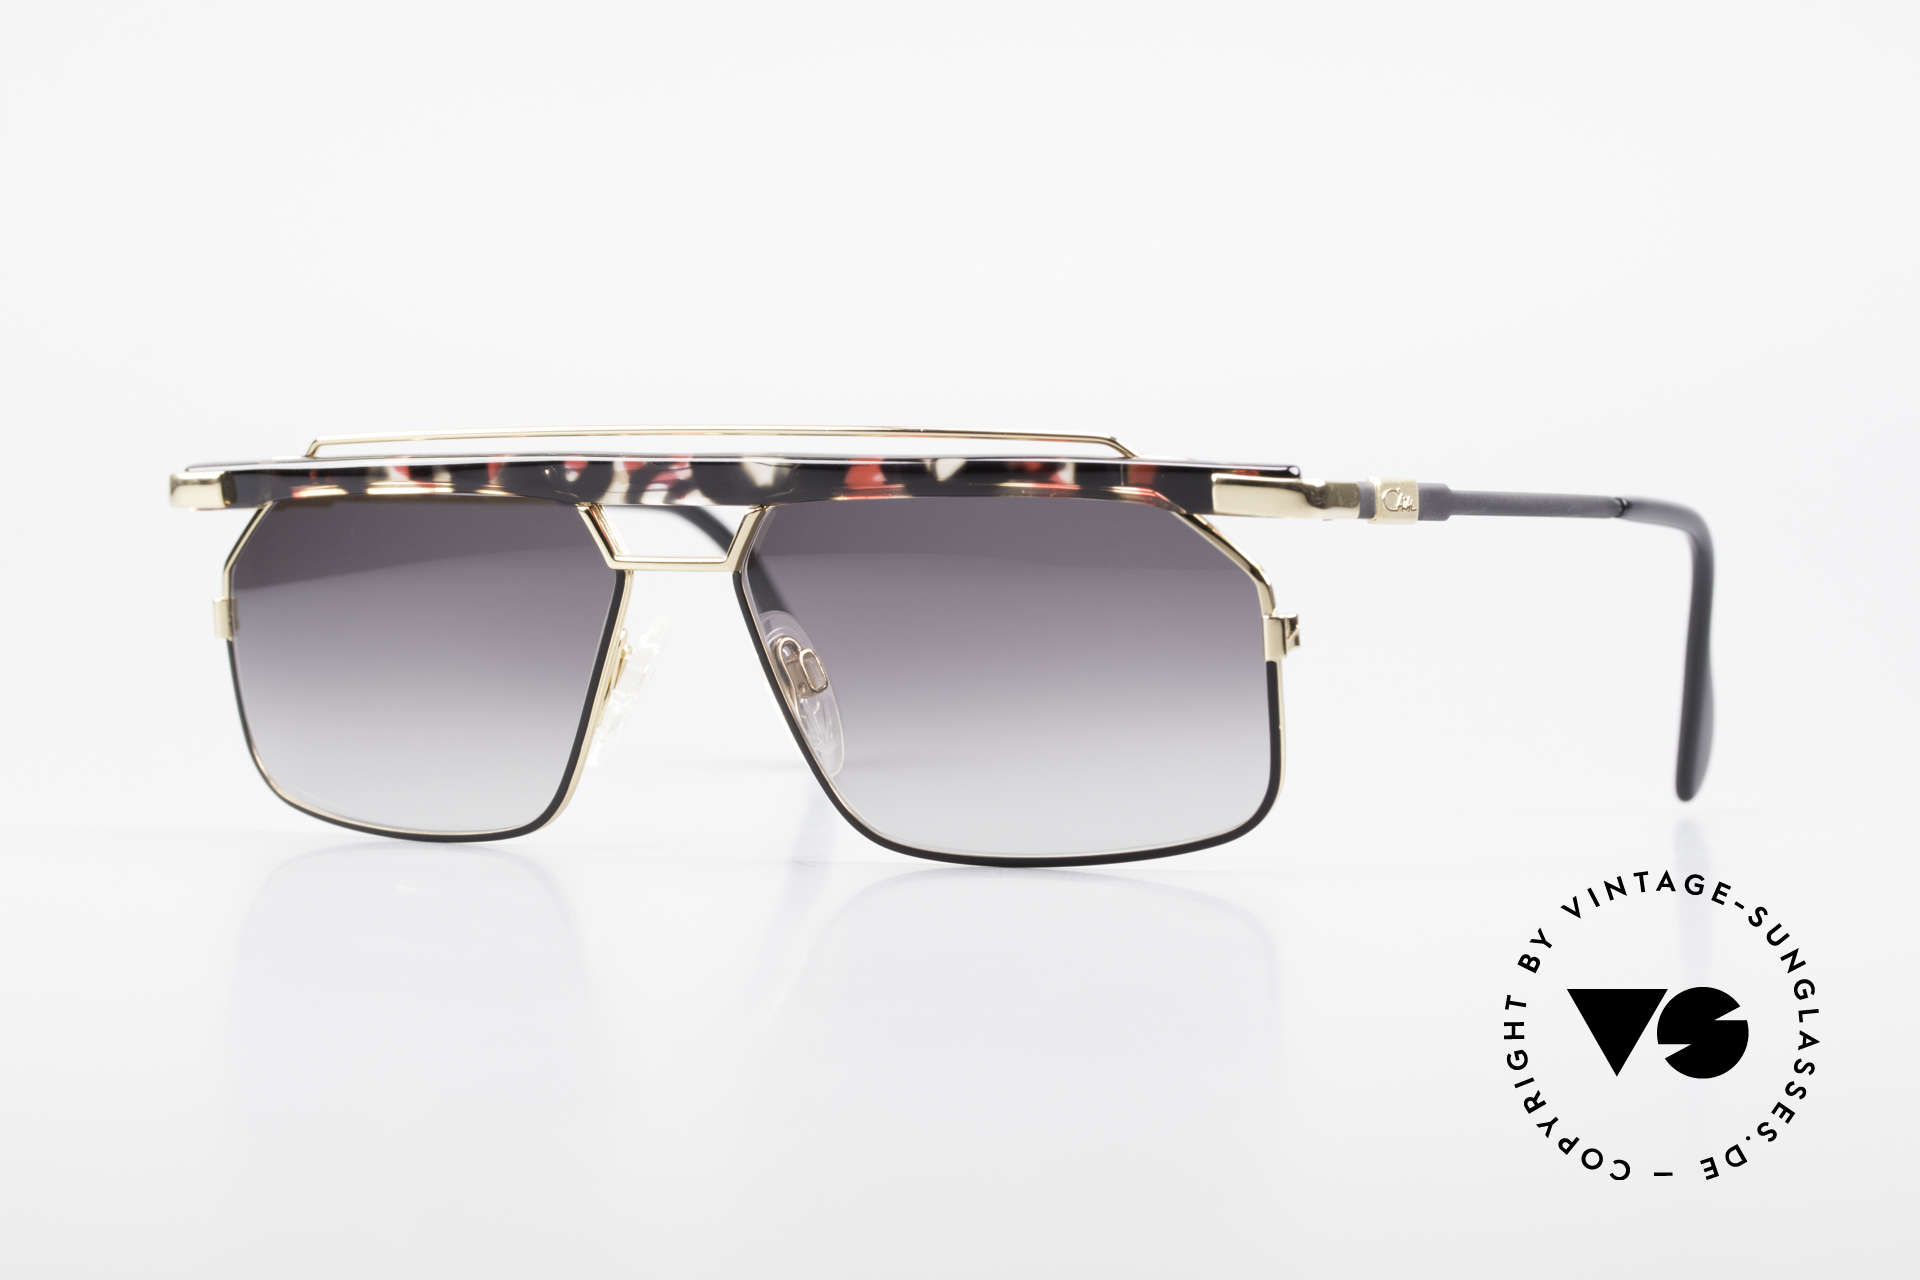 Cazal 752 Ultra Rare Vintage Sunglasses, extraordinary & striking Cazal shades from 1993, Made for Men